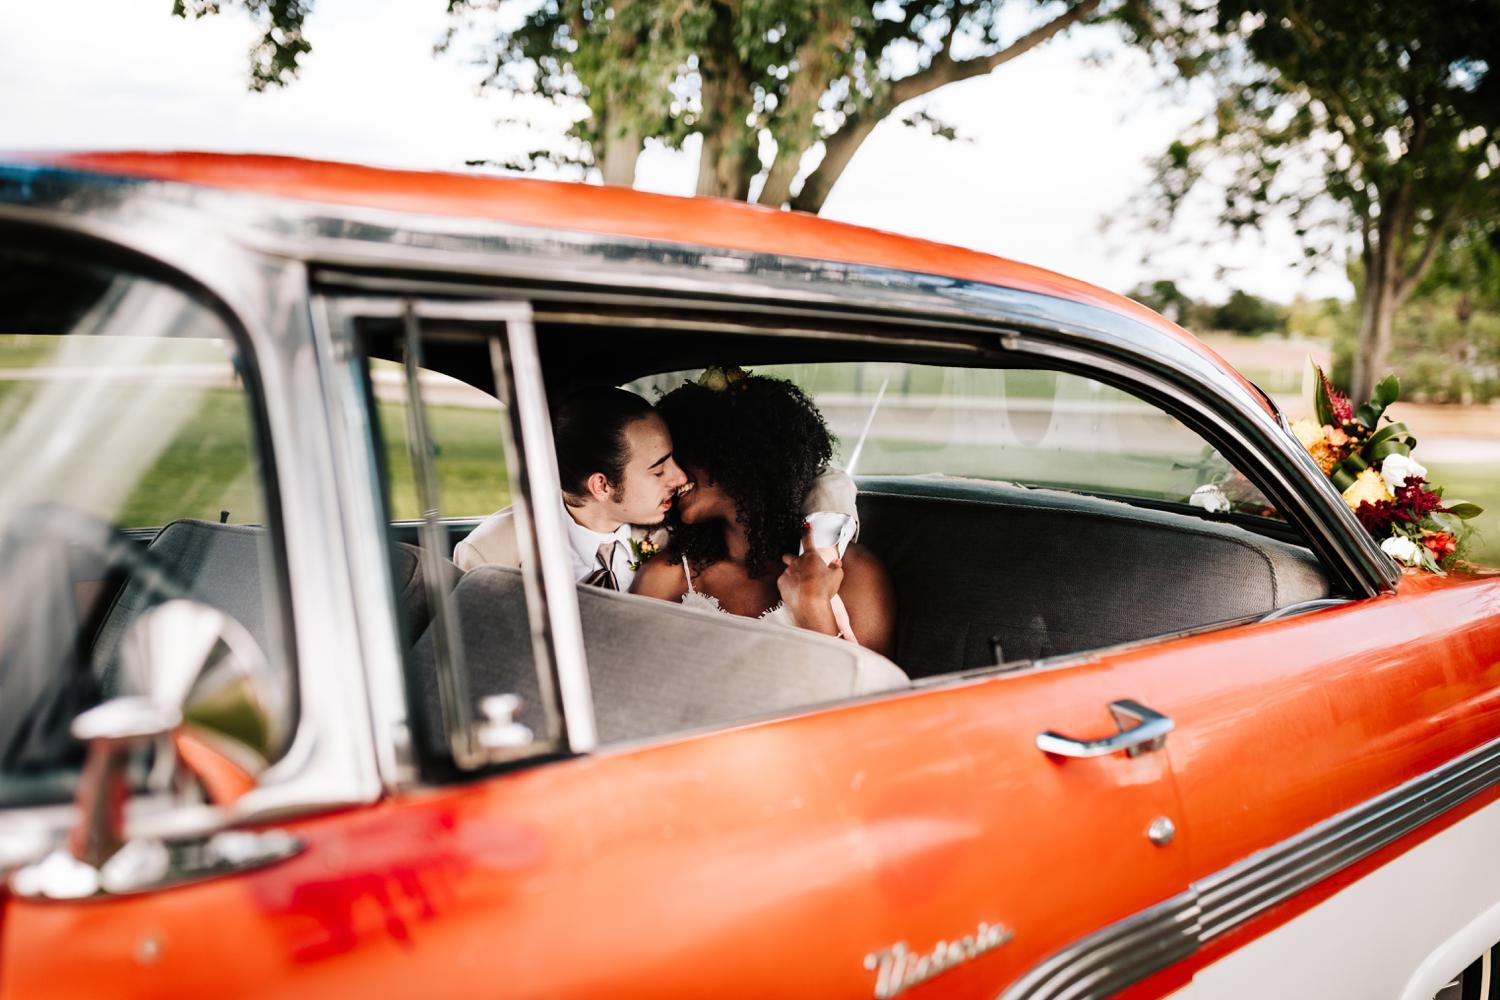 Bride and groom in vintage getaway car for tropical themed wedding in New Mexico